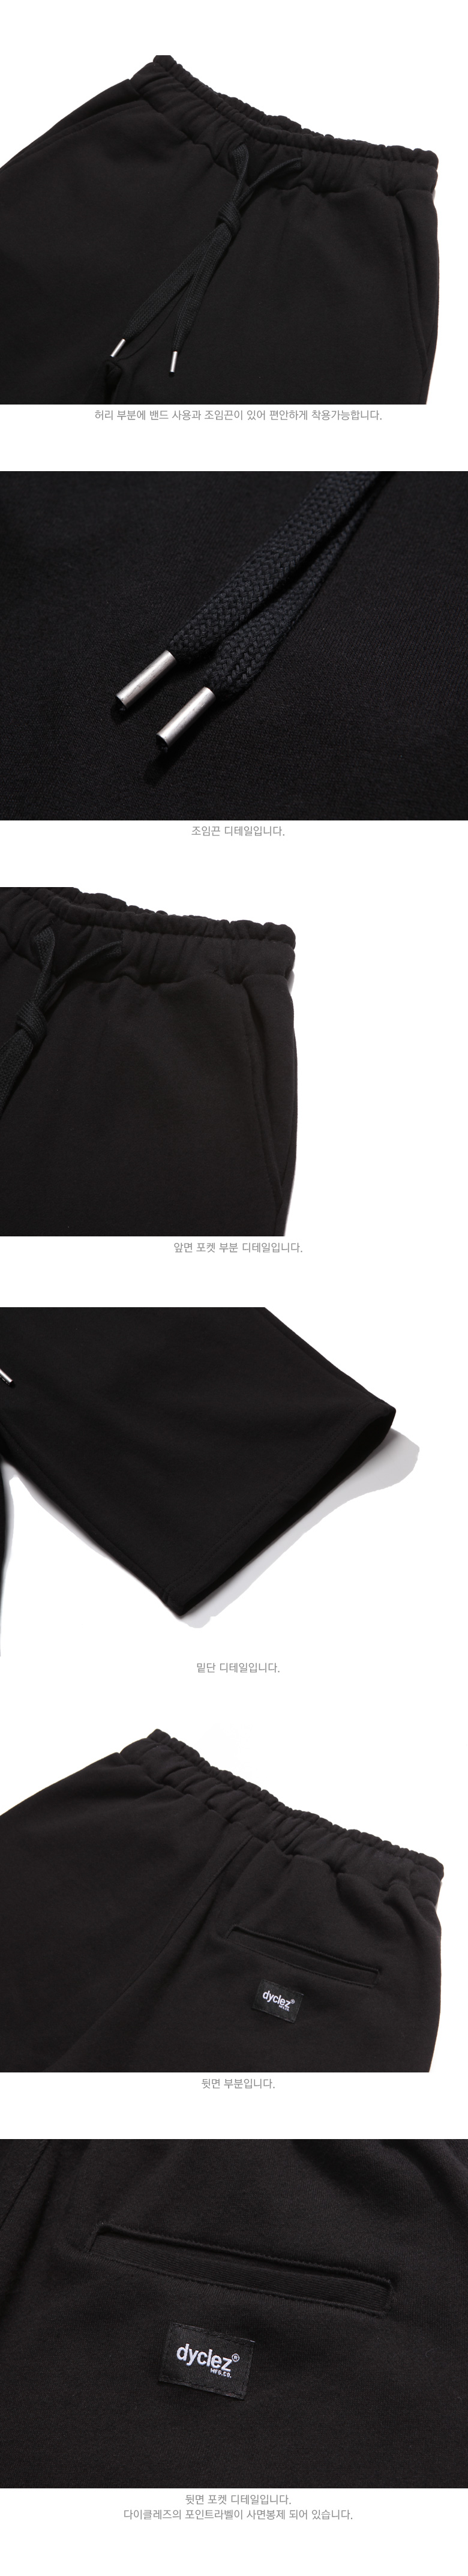 20180615_dy_classicjjuri_short_pants_detail_bk_uk_02.jpg